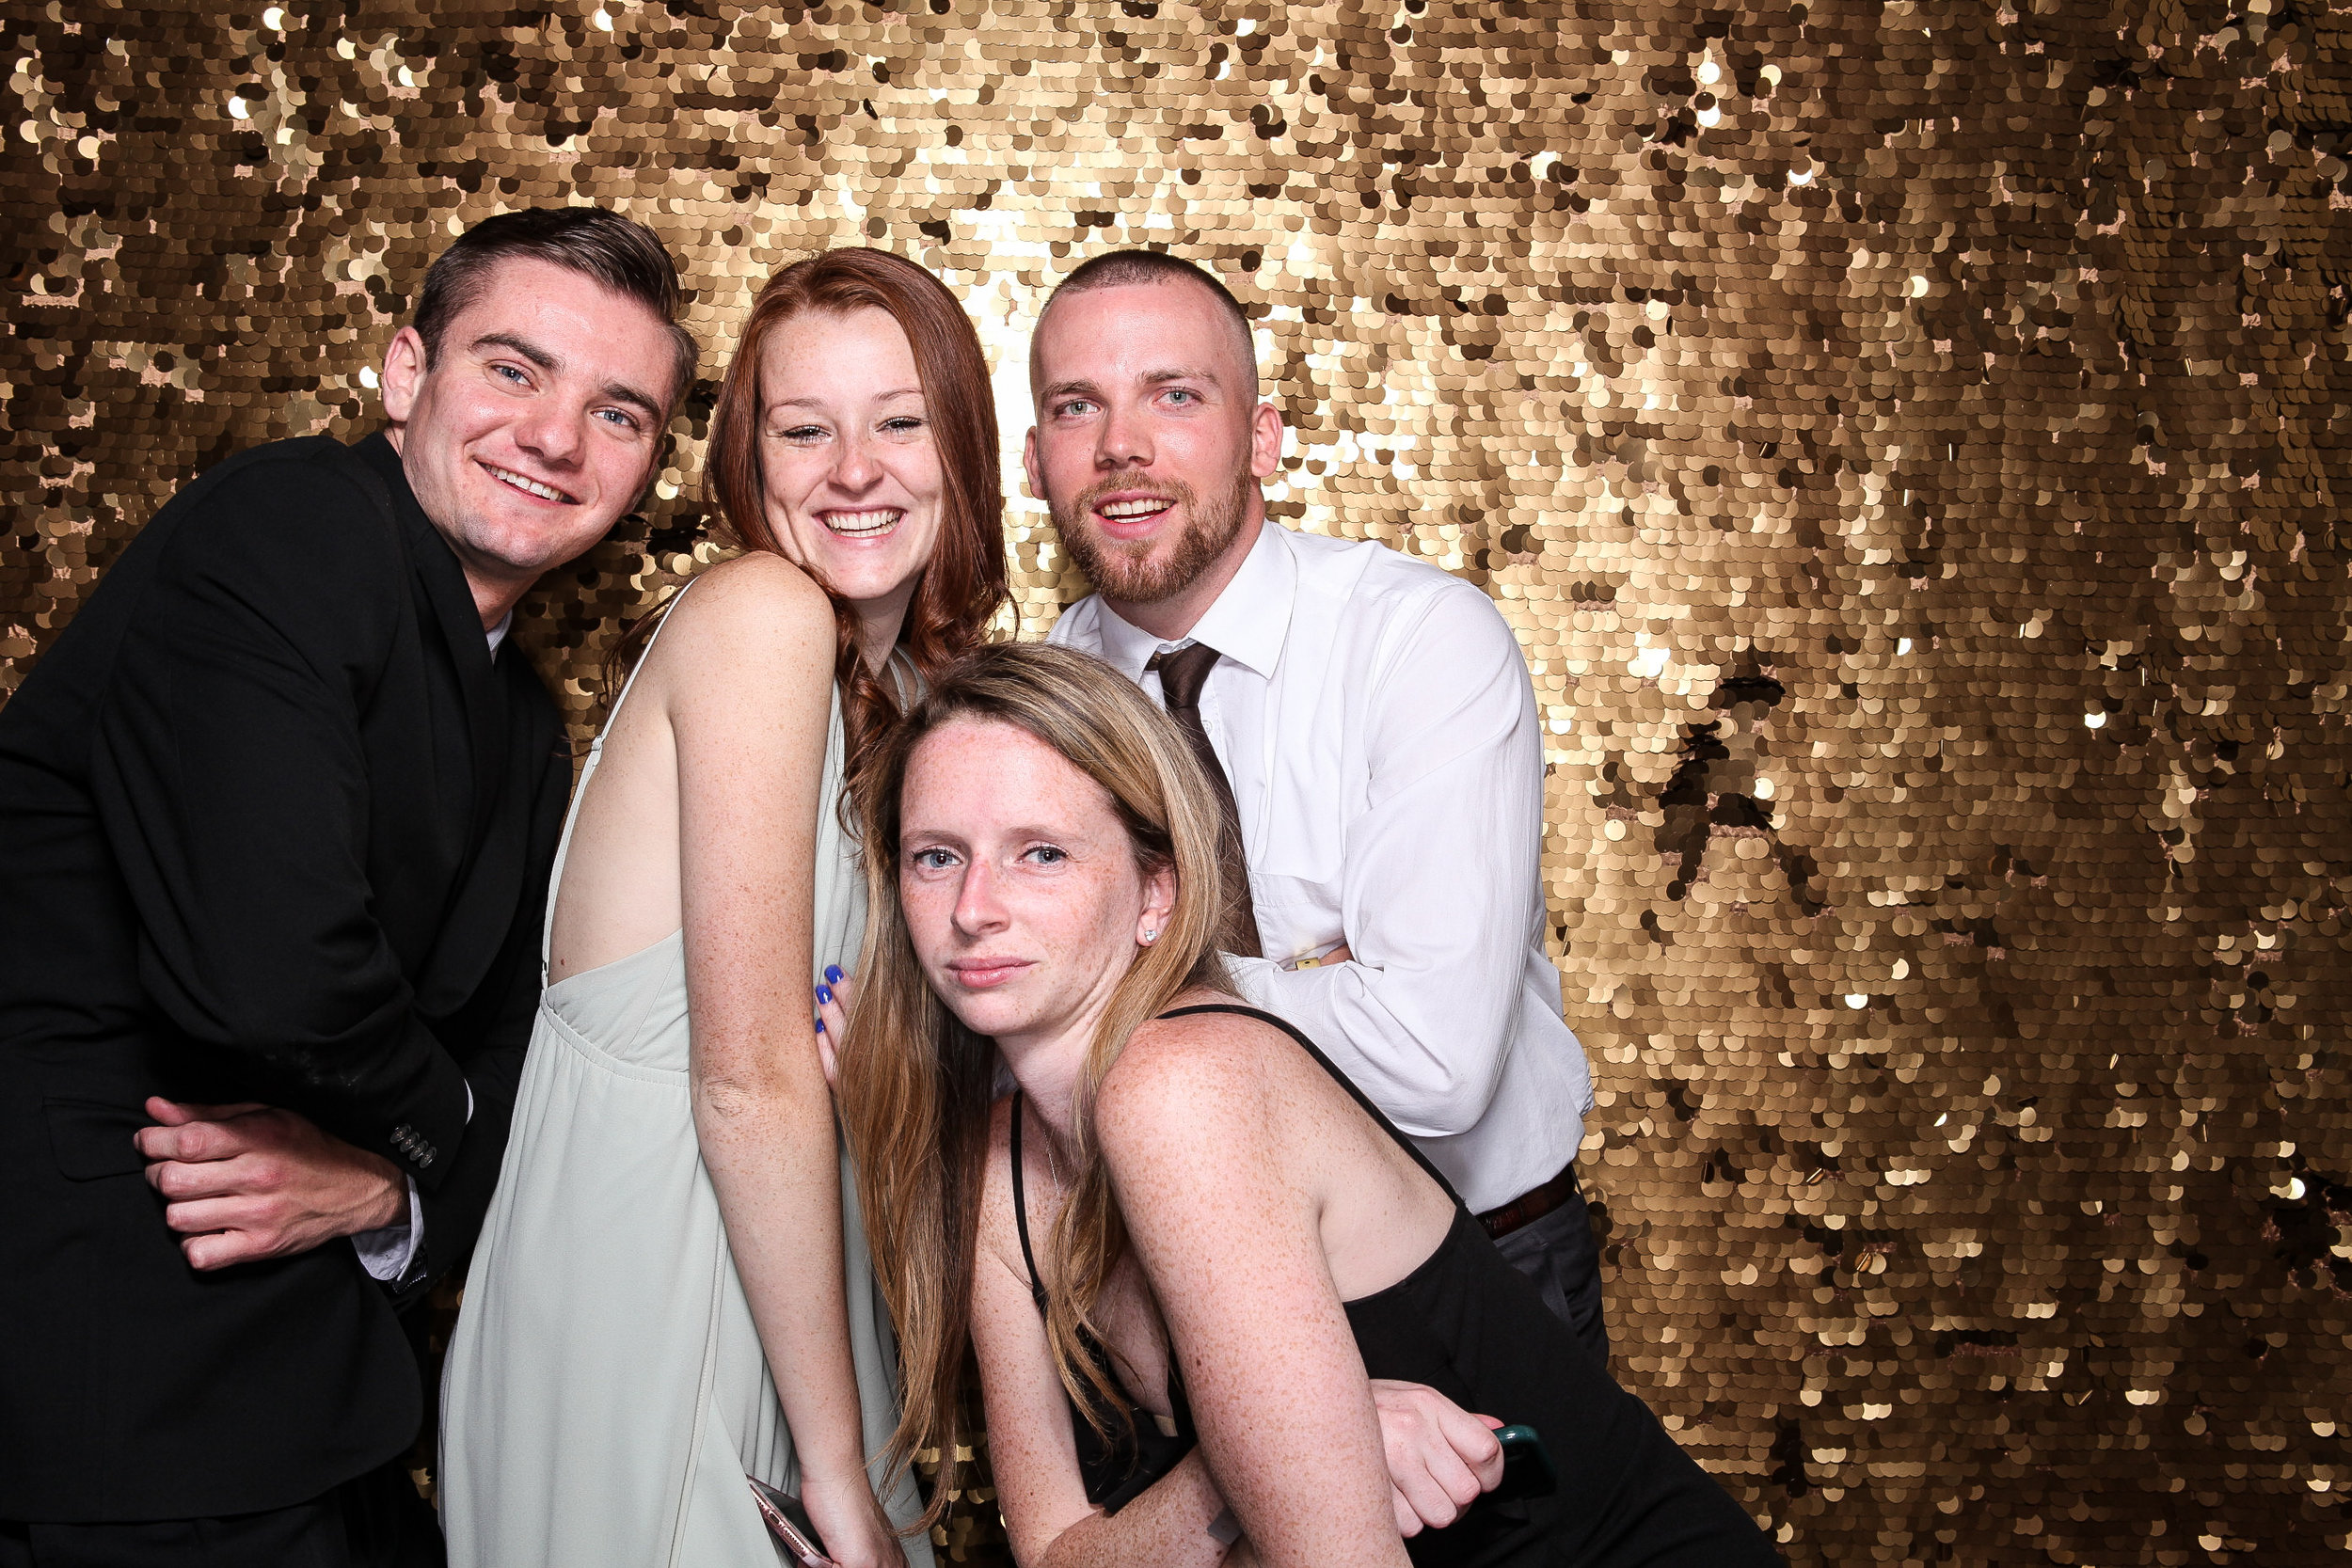 20190503_Adelphi_Senior_Formal-234.jpg